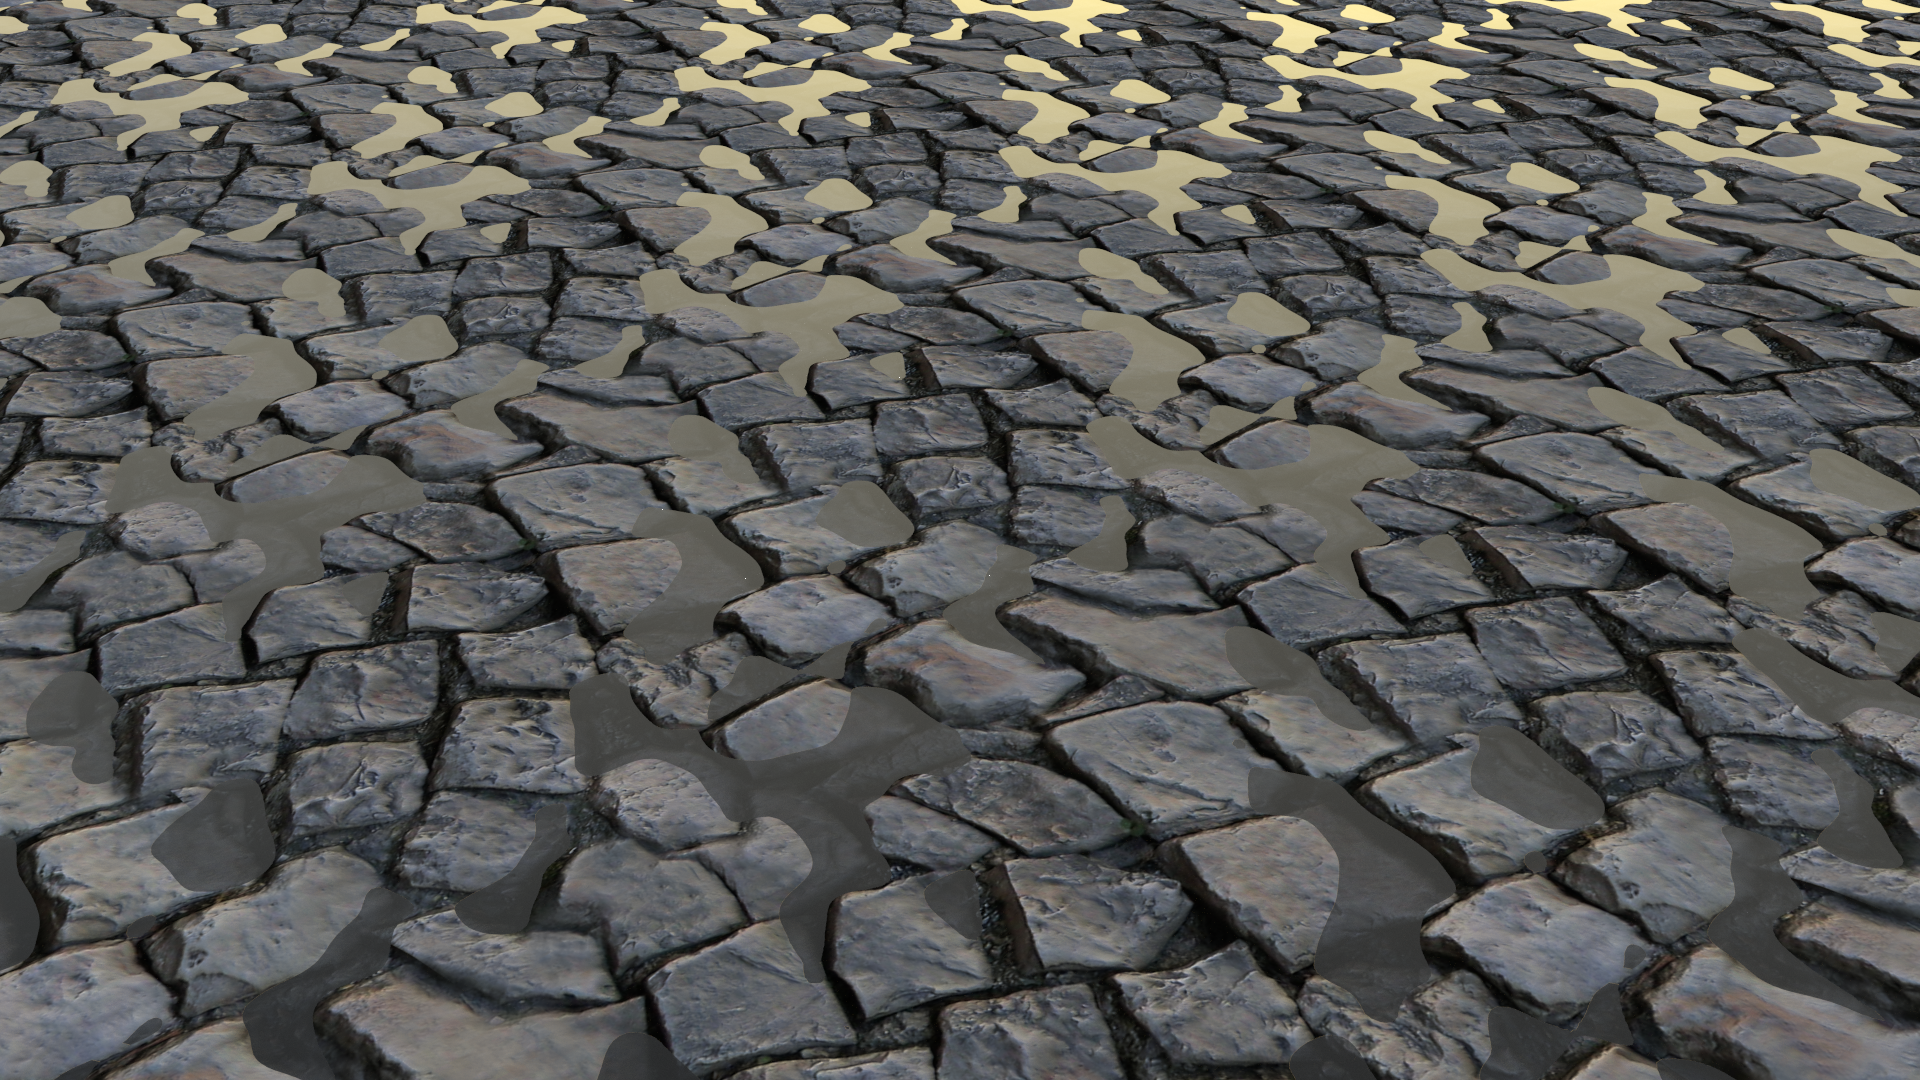 cobblestone with water by Shinkira on DeviantArt  Stone Block Seamless Tileable Texture. Cobblestone Texture Seamless